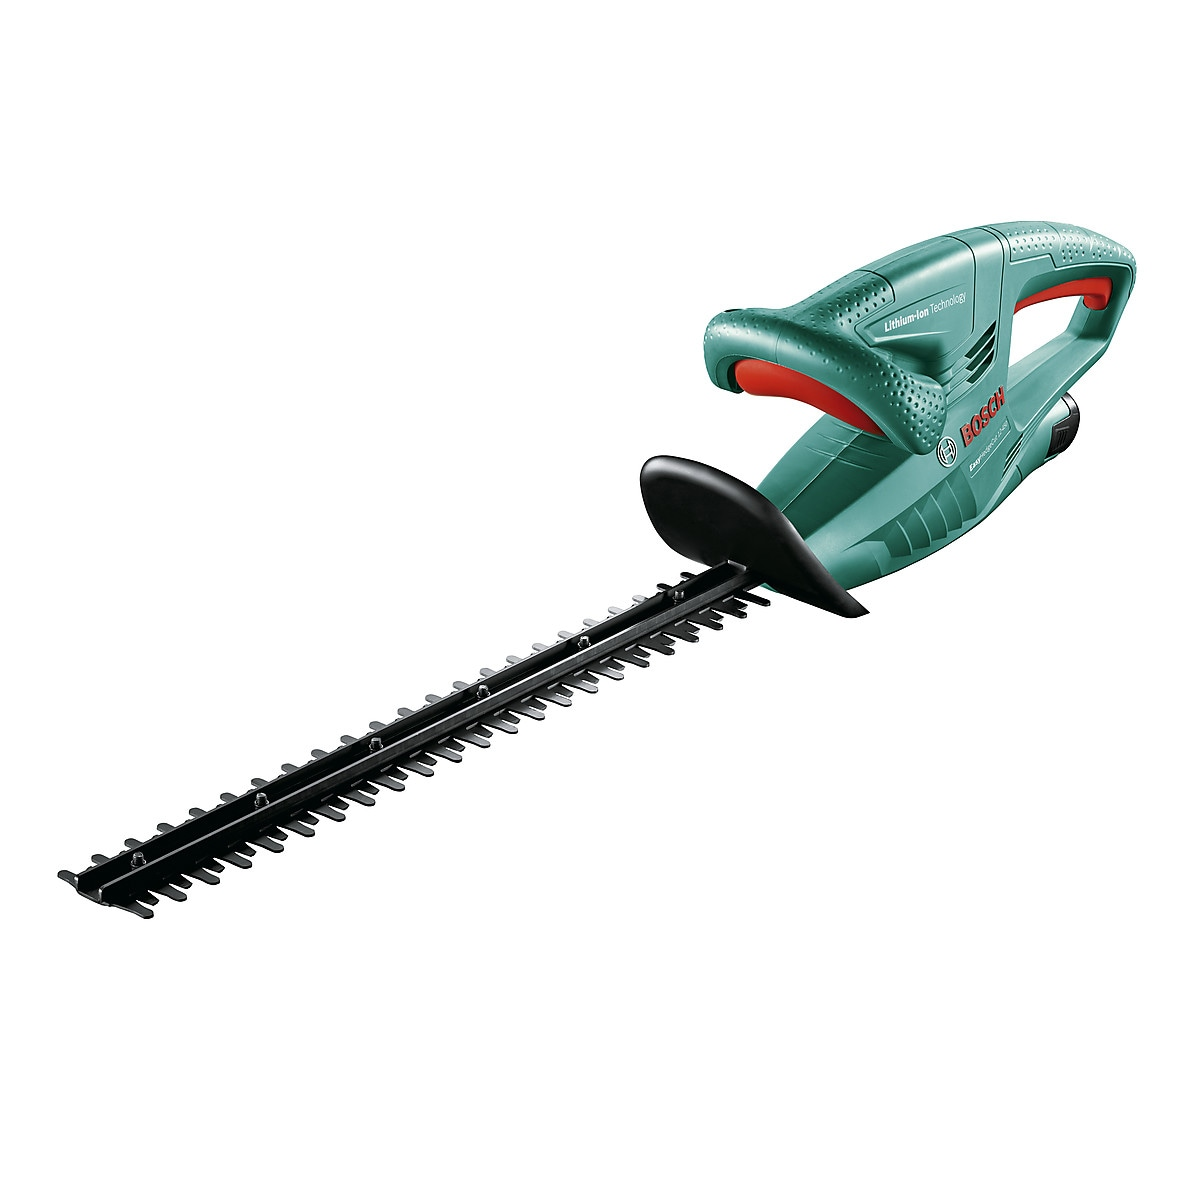 Bosch 12-450 Hedge Trimmer